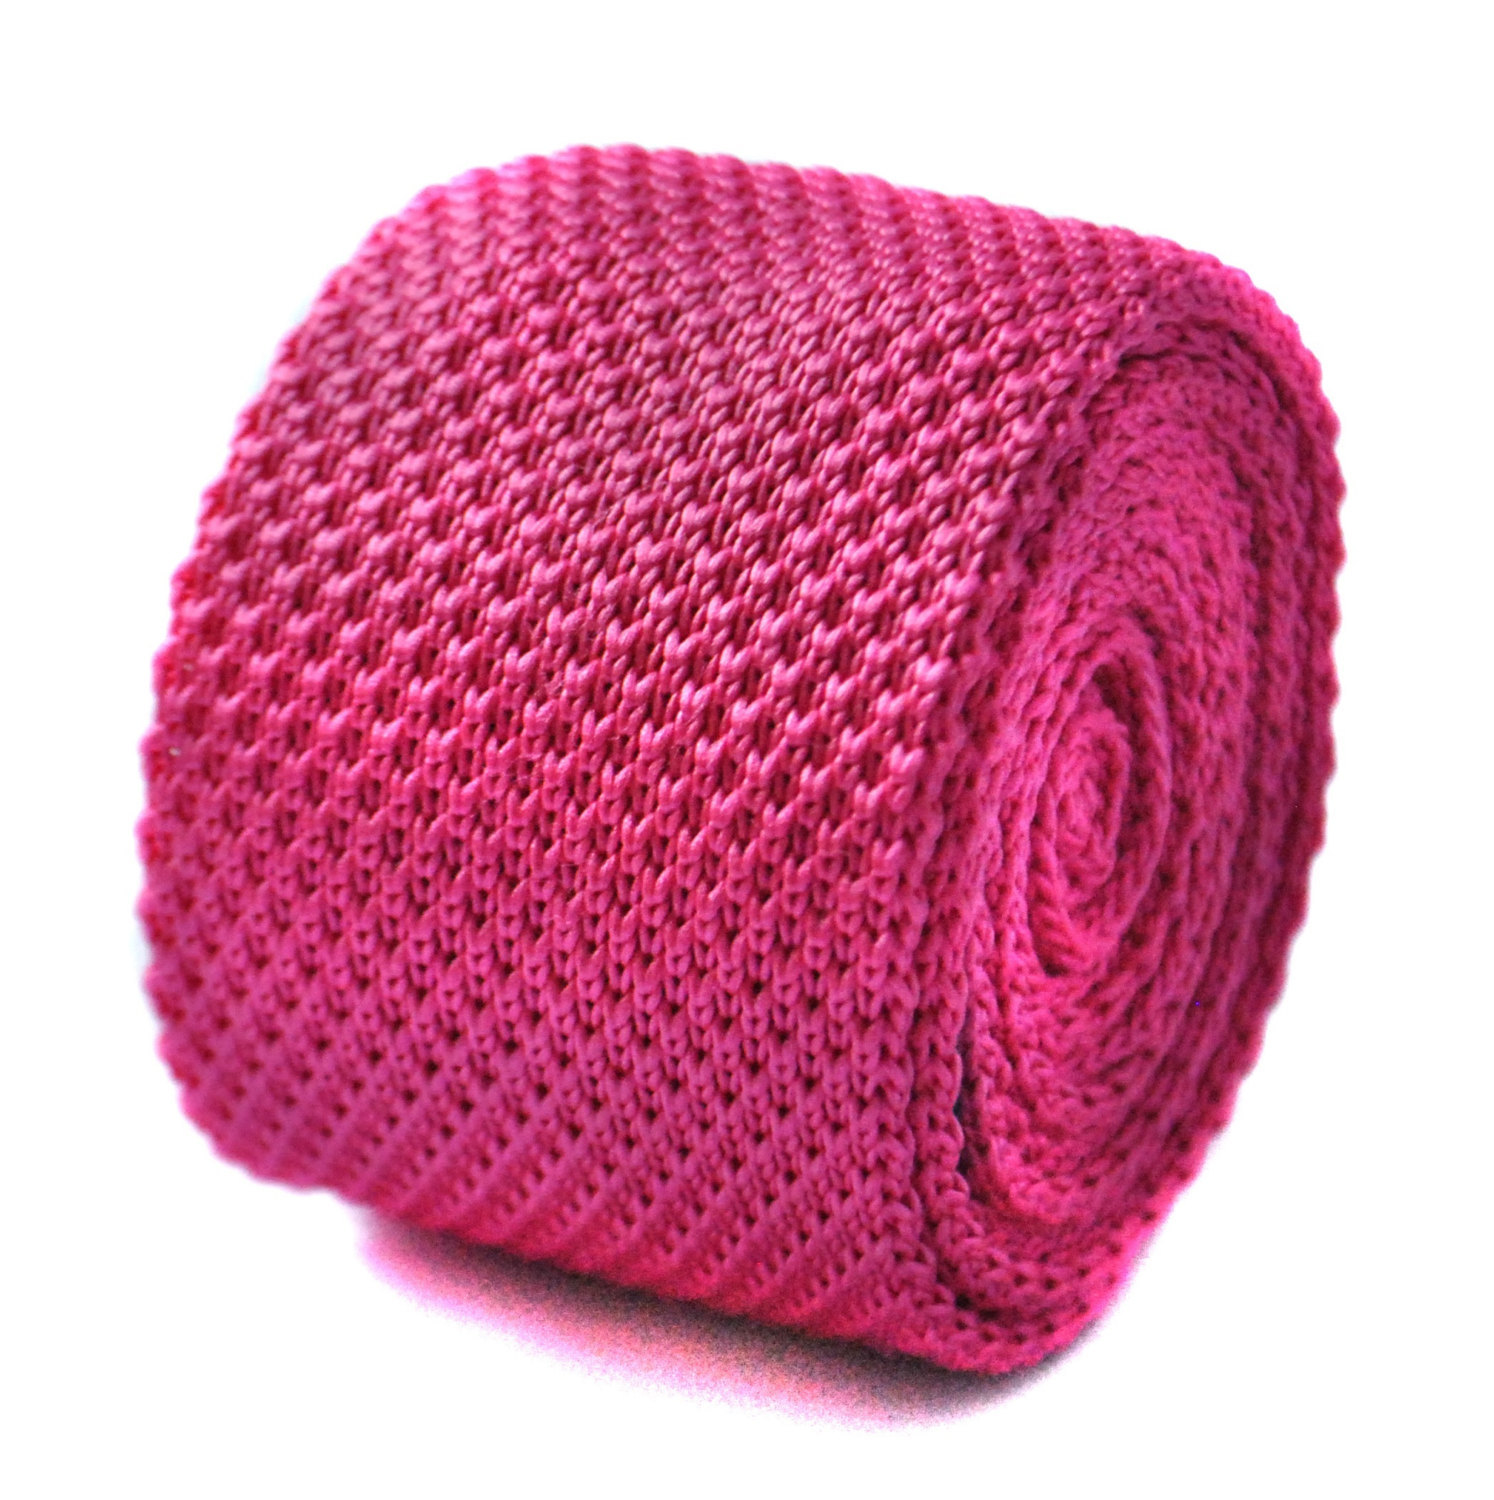 Plain knitted bright pink tie by Frederick Thomas FT1707a